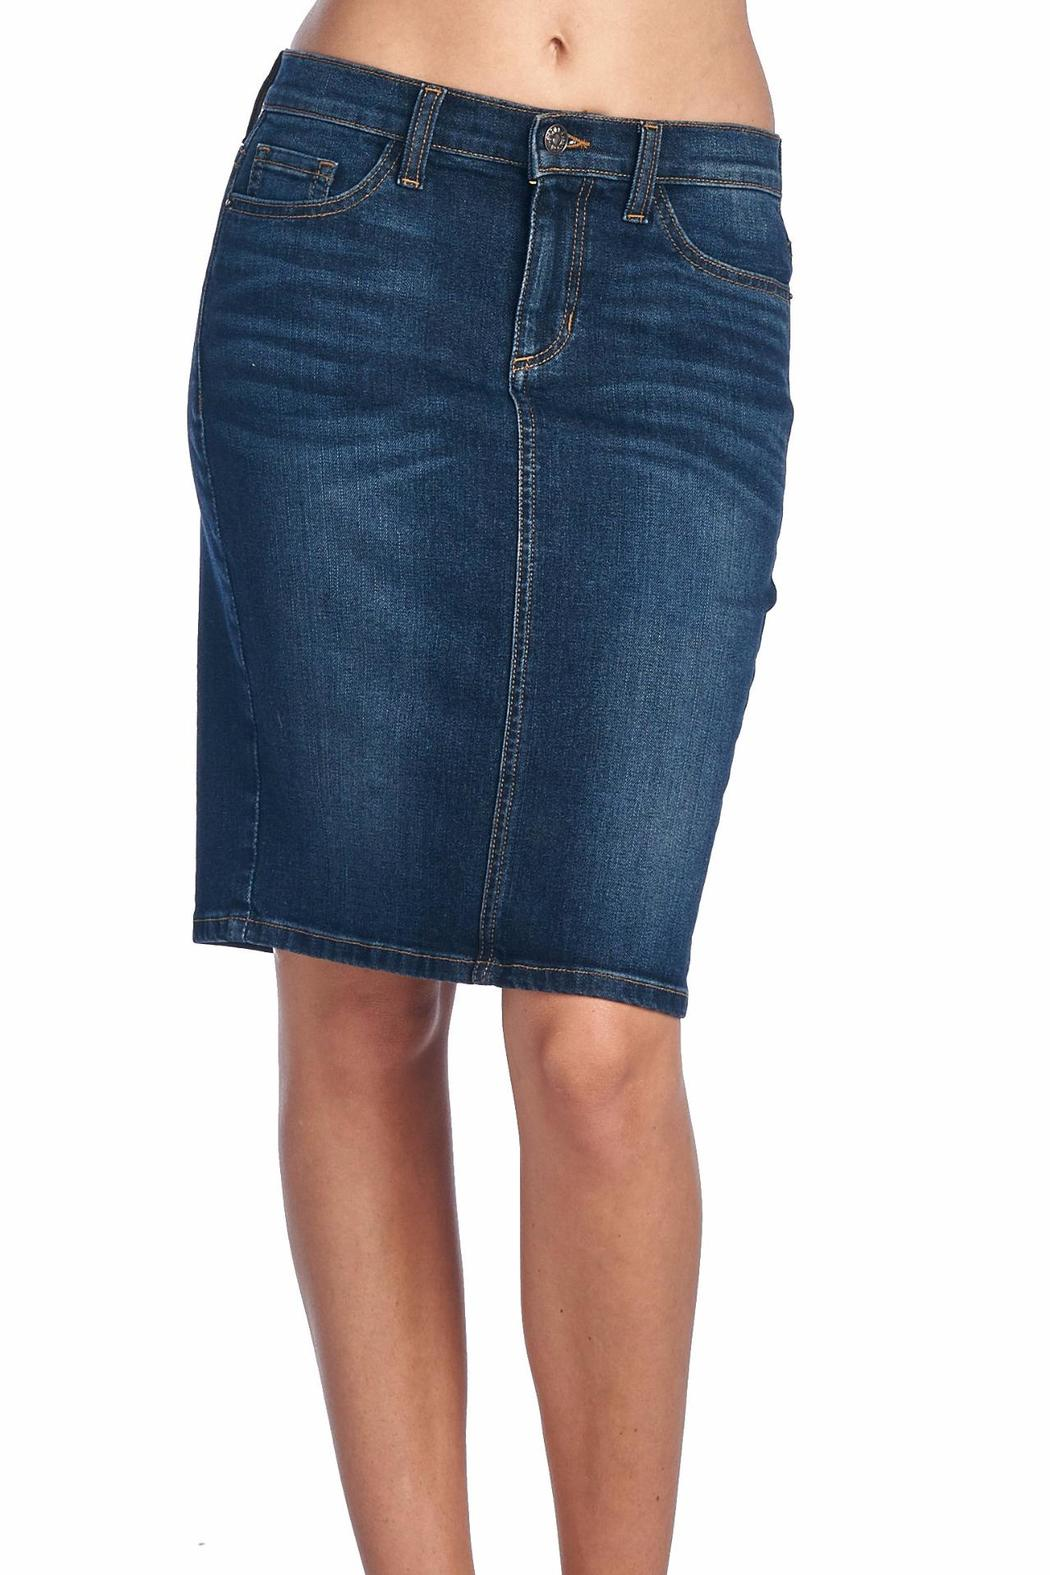 Sneak Peek Dark Denim Skirt from St. George by The NOOK — Shoptiques